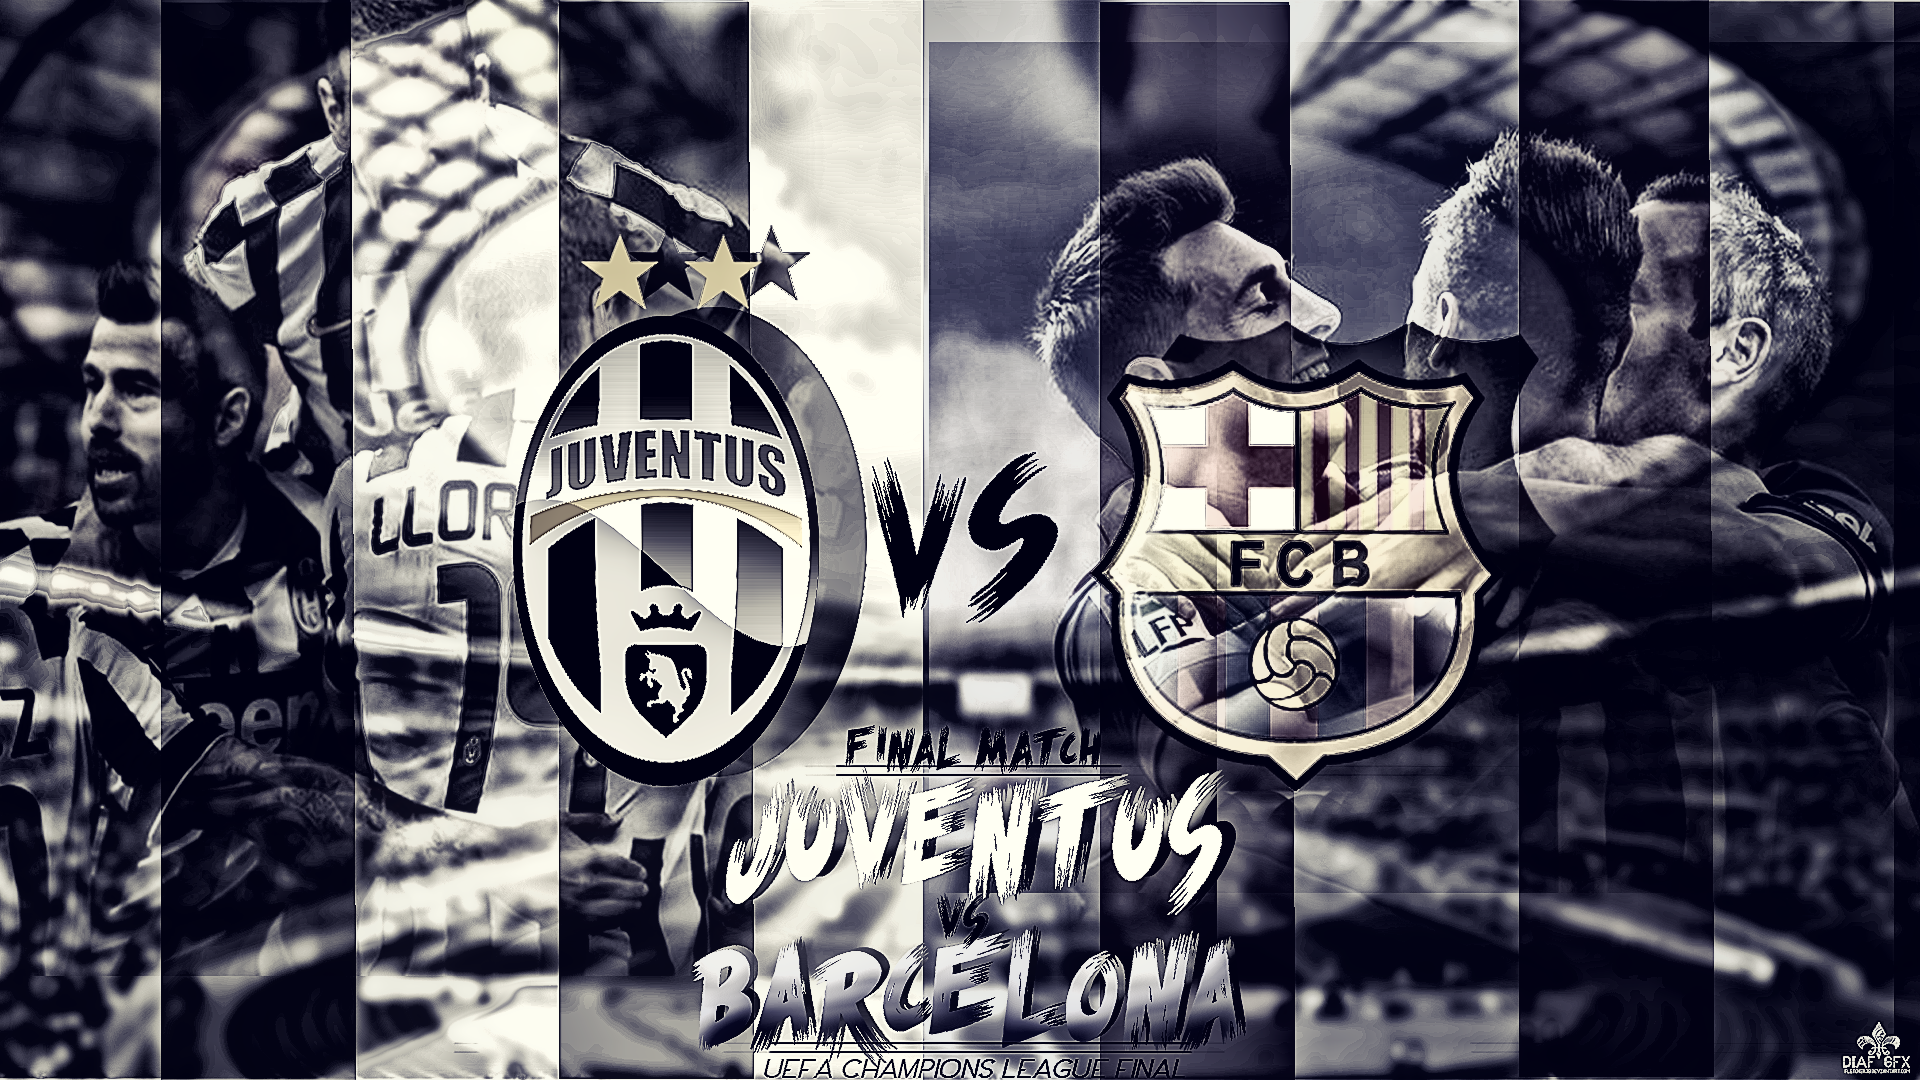 Juventus Vs Barcelona Uefa Champions League Final By Fletcher39 On Deviantart